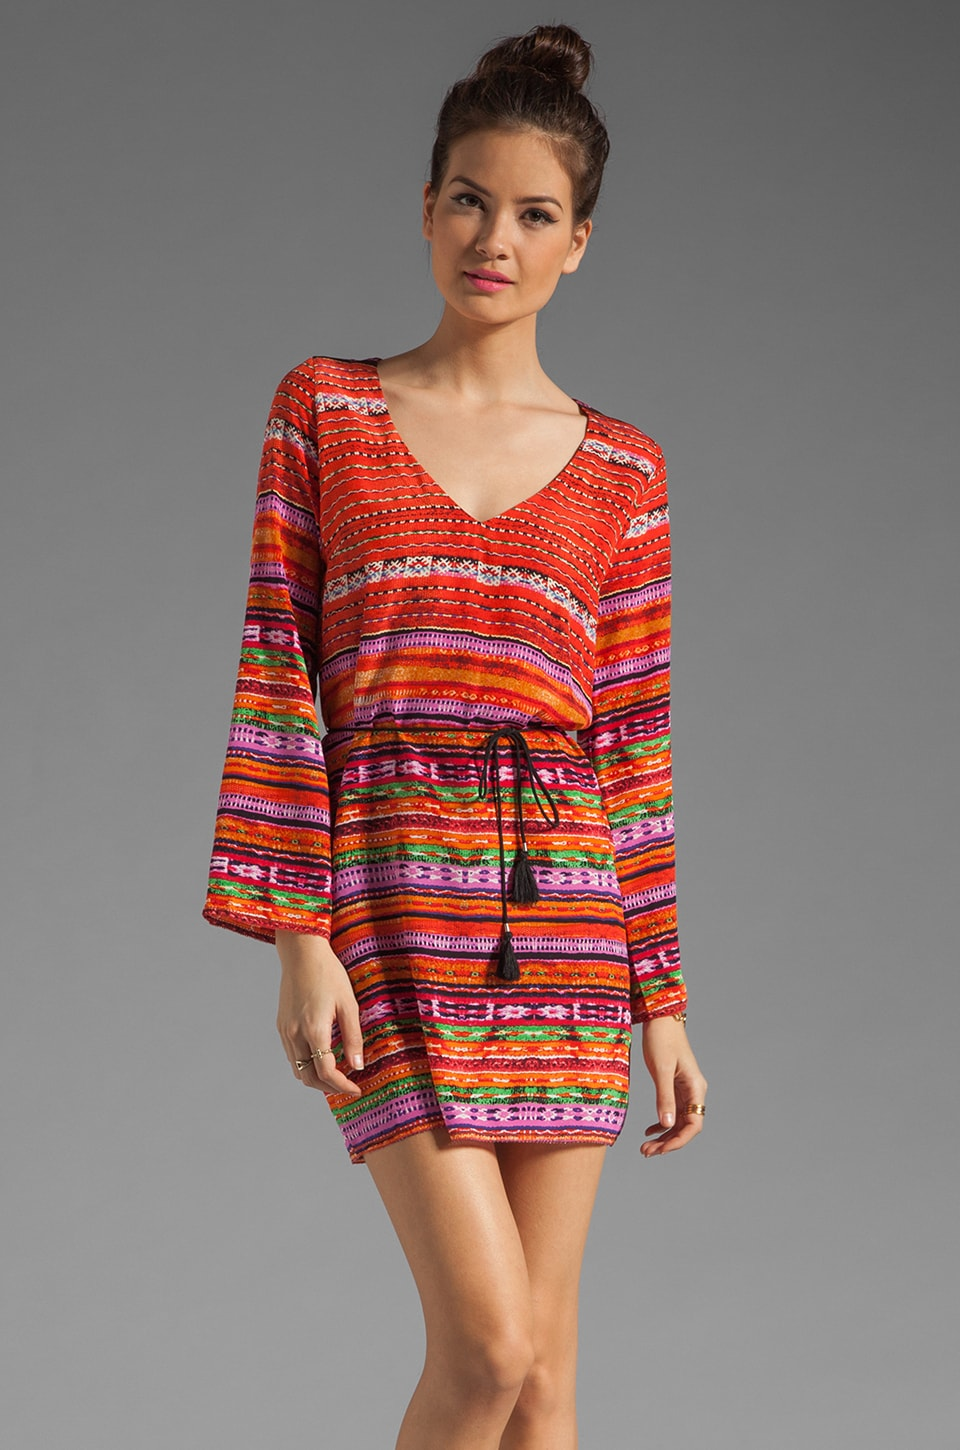 Dolce Vita Karita Dress in Red Multi